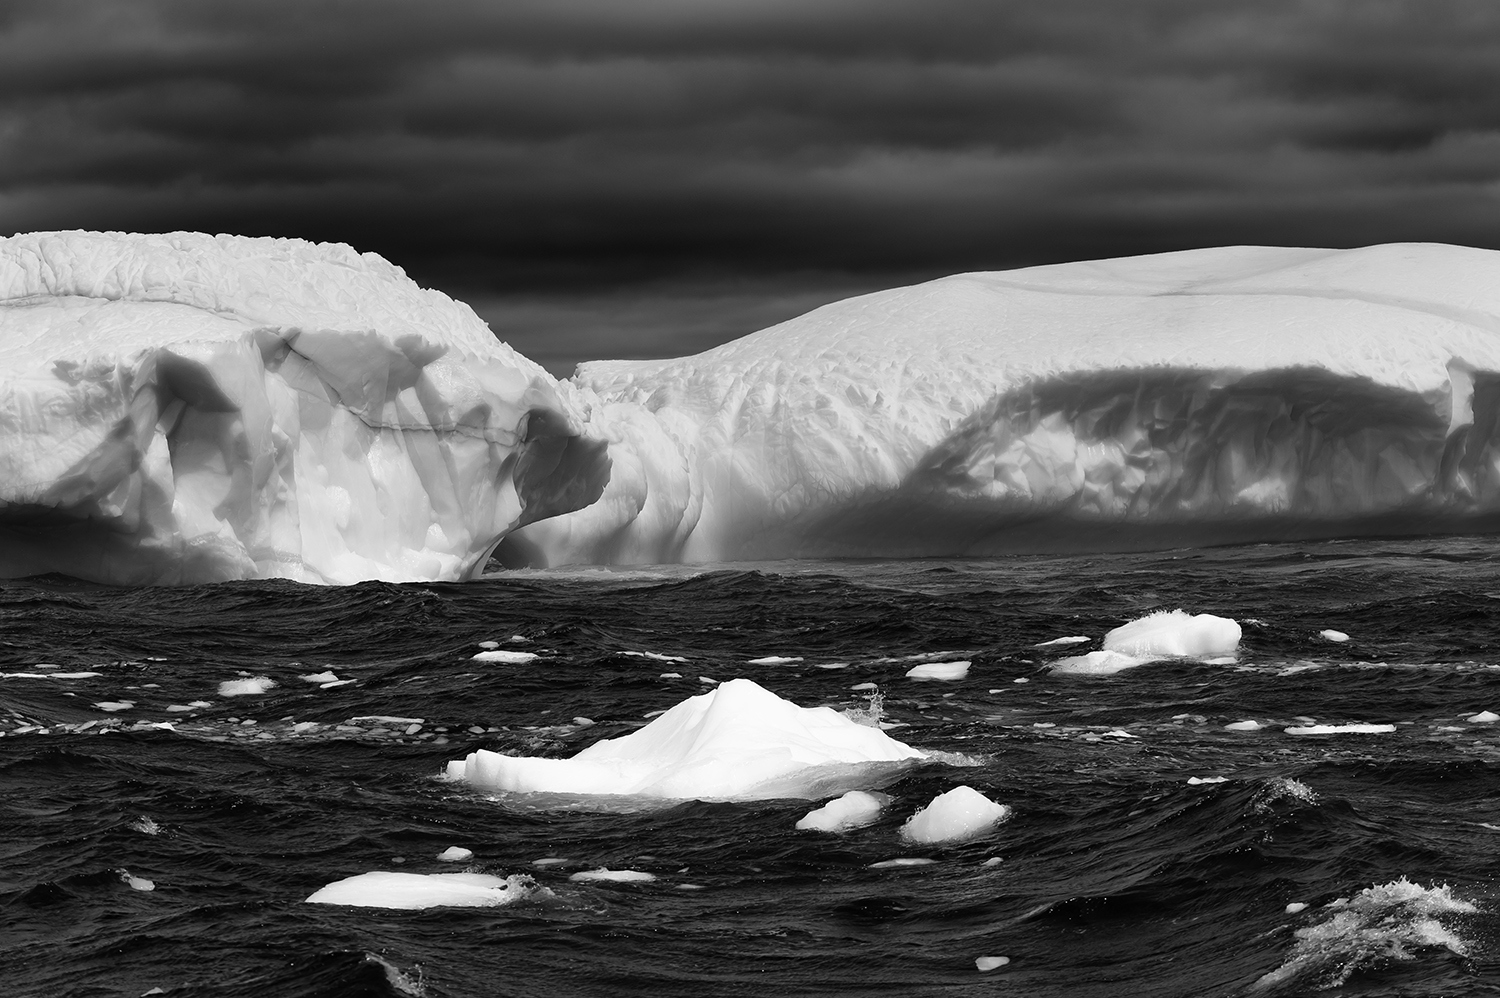 Newfoundland, CanadaImage no: 19-004483-bw  Click HERE to Add to Cart